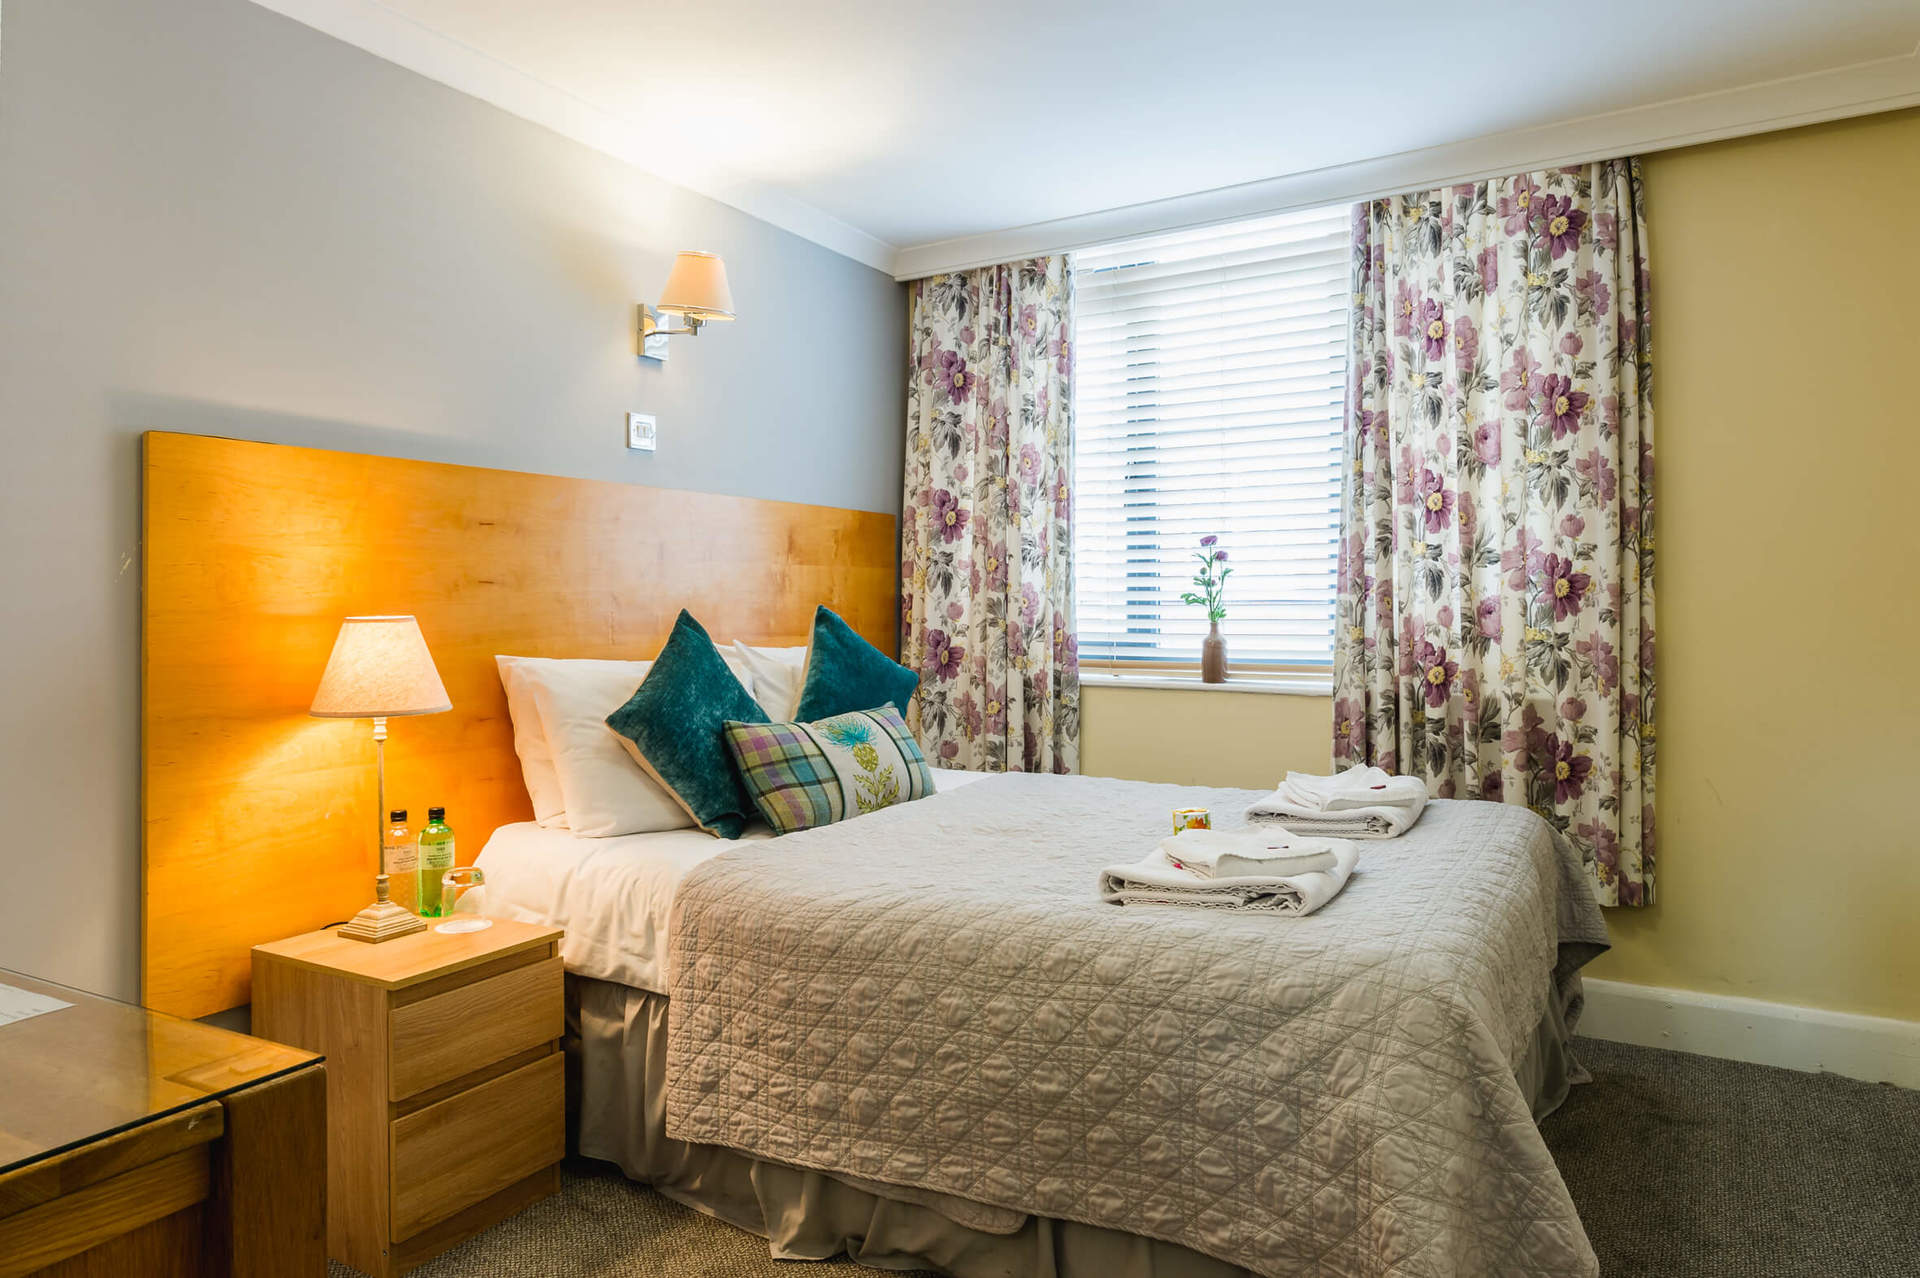 Picture of a bedroom in George Oxford Hotel in Oxford